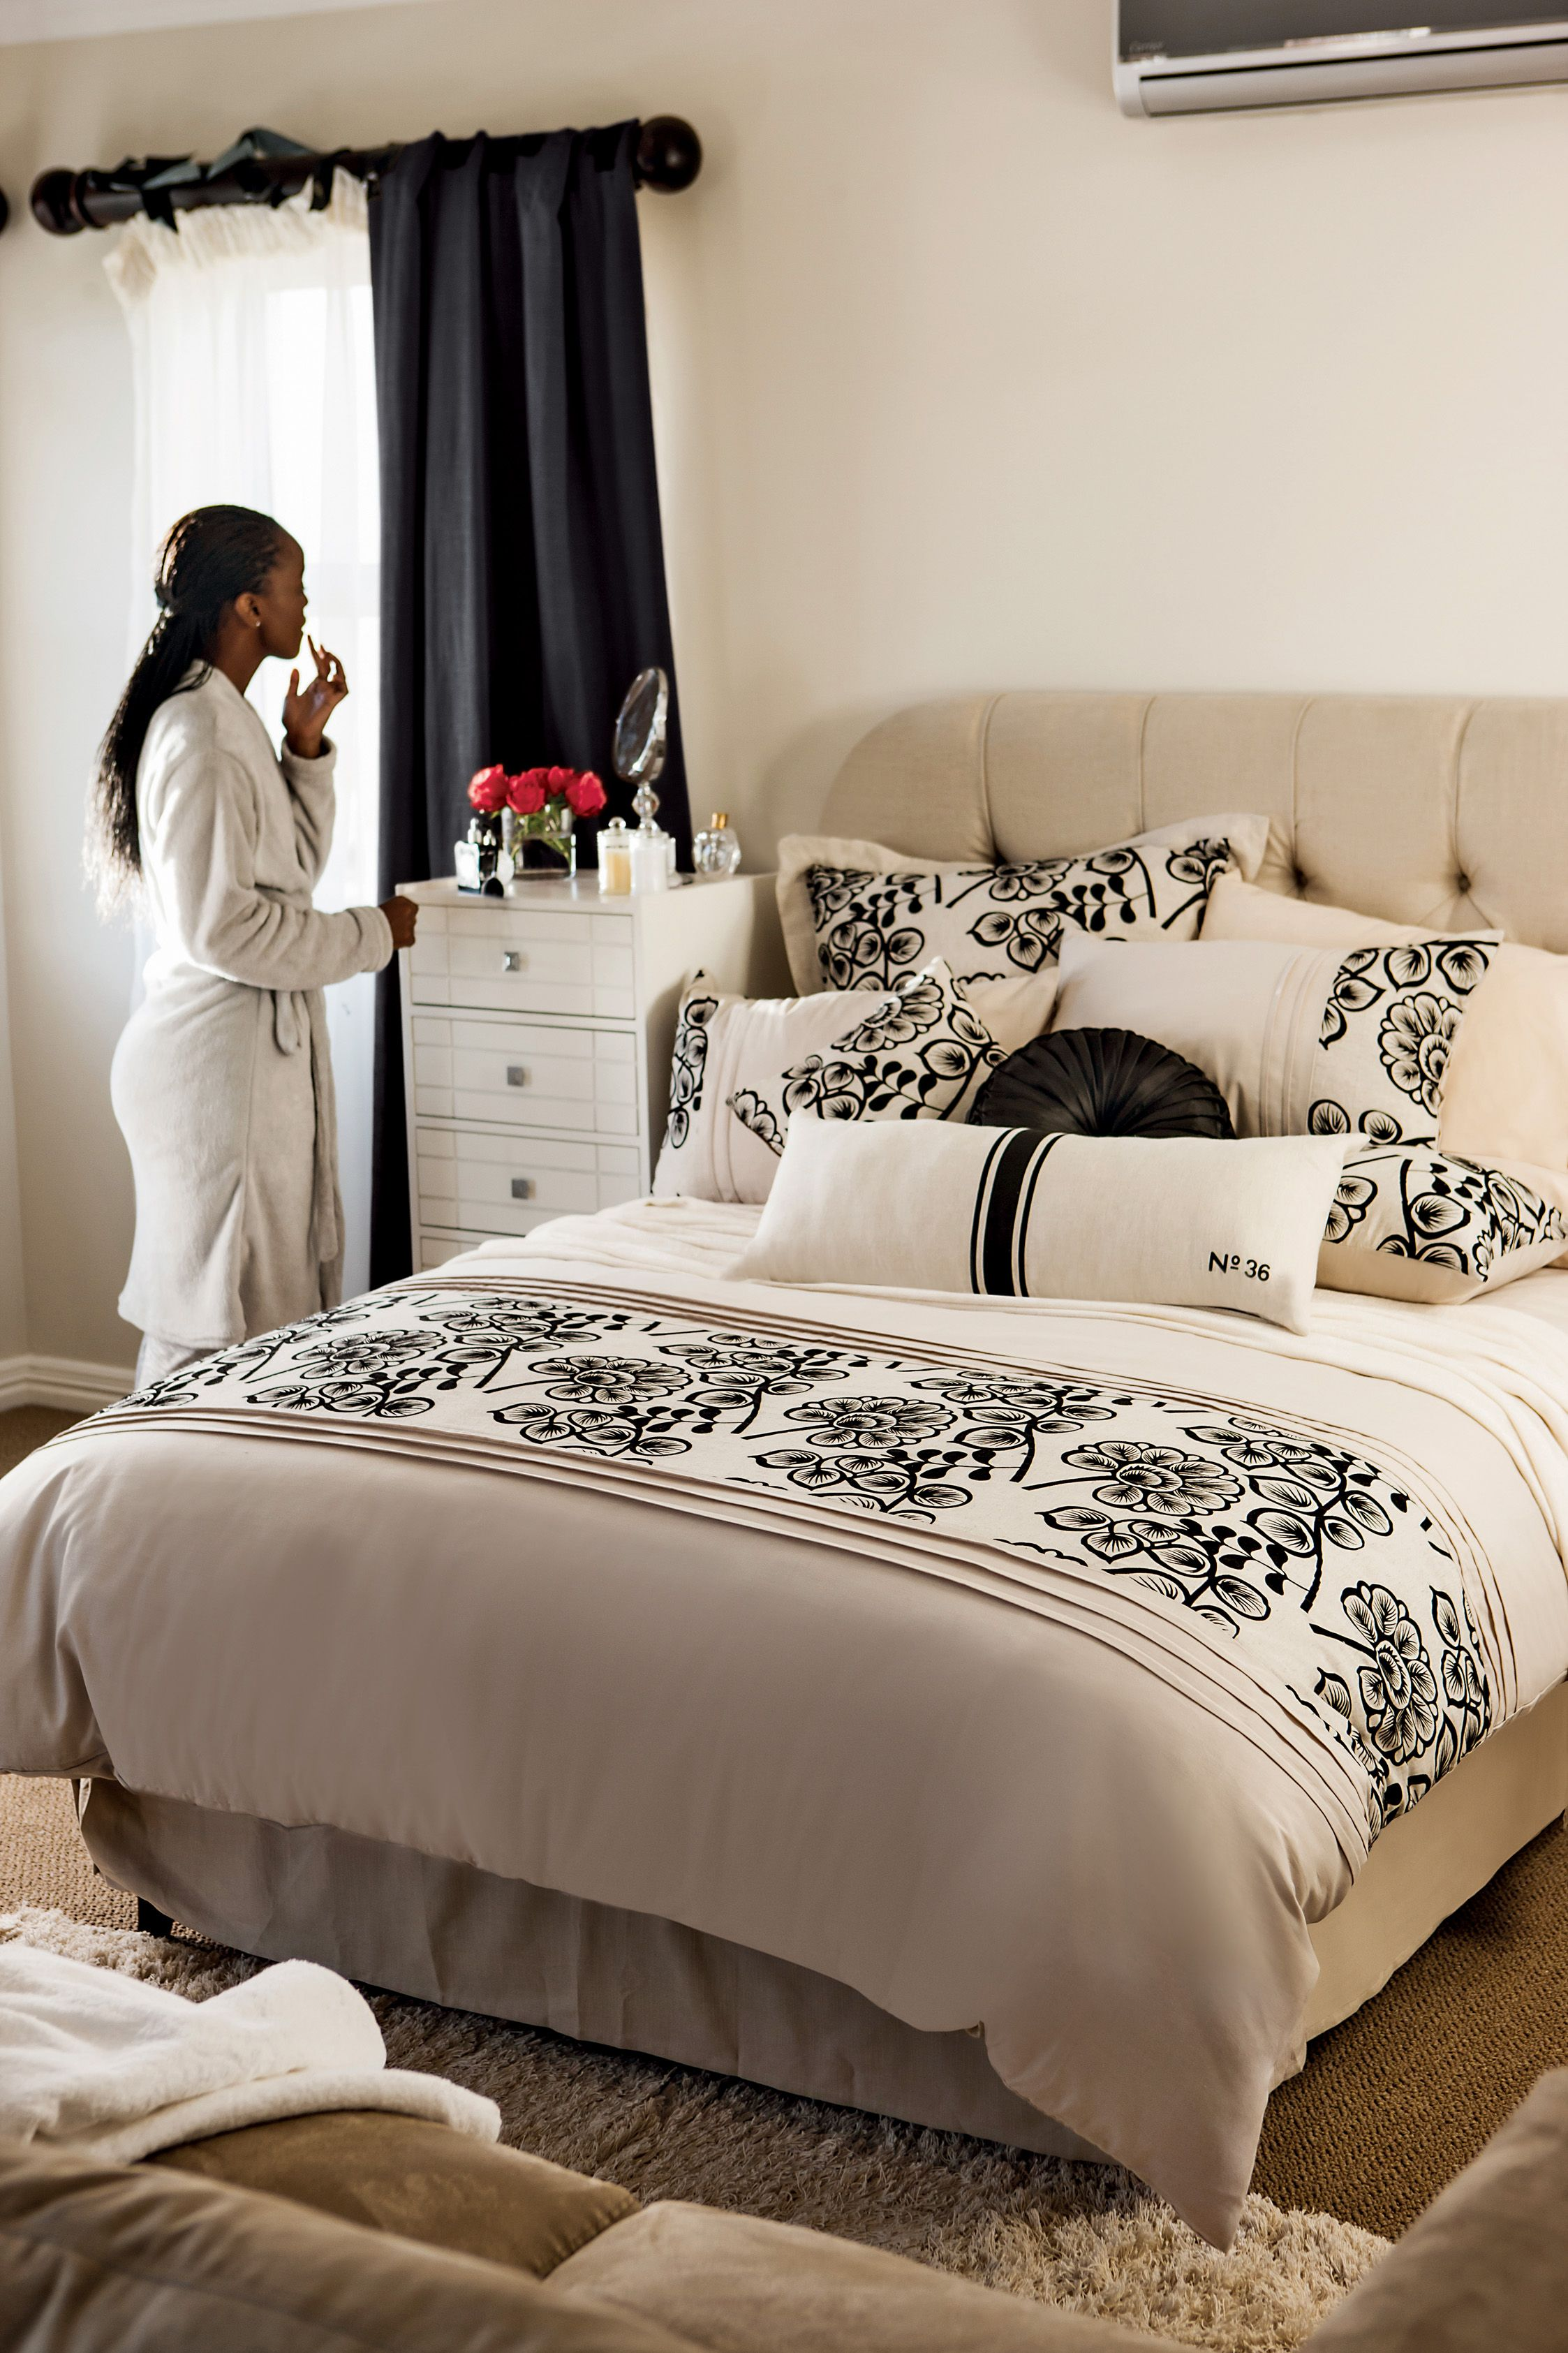 Mr price home bedroom view our range at bedroom dreams pinterest Home furniture online prices